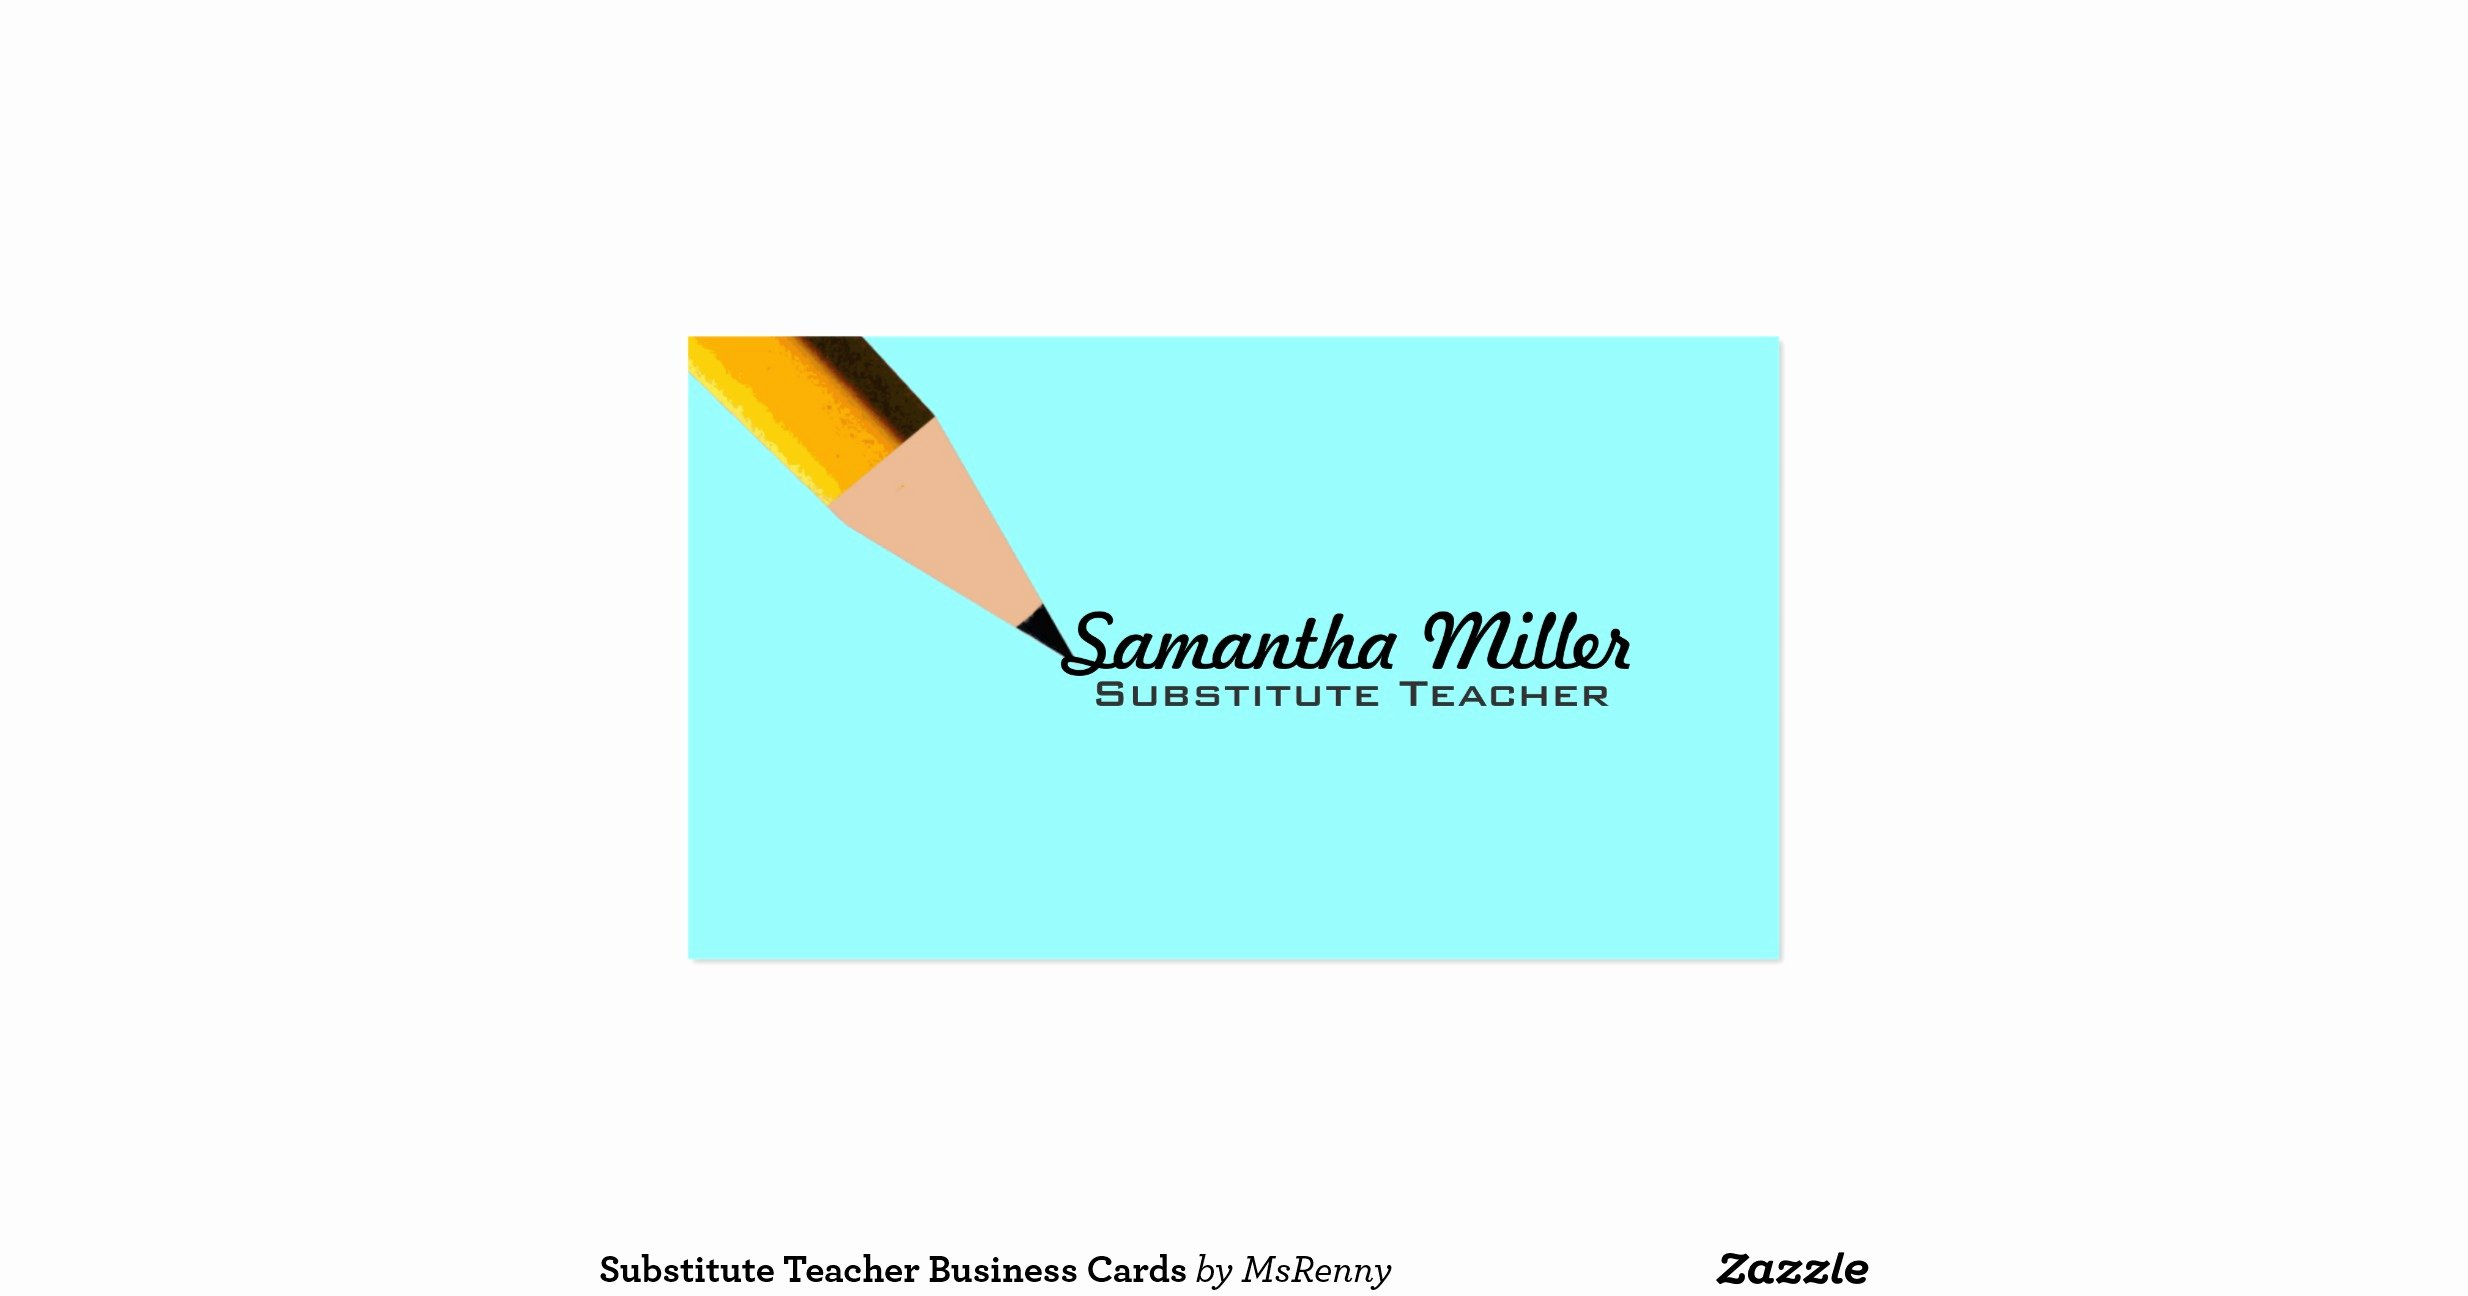 Substitute Teachers Business Cards Lovely Substitute Teacher Business Cards Rc6d Eaa4481a86d885ac2f2e4a79 I579t 8byvr 1200 View